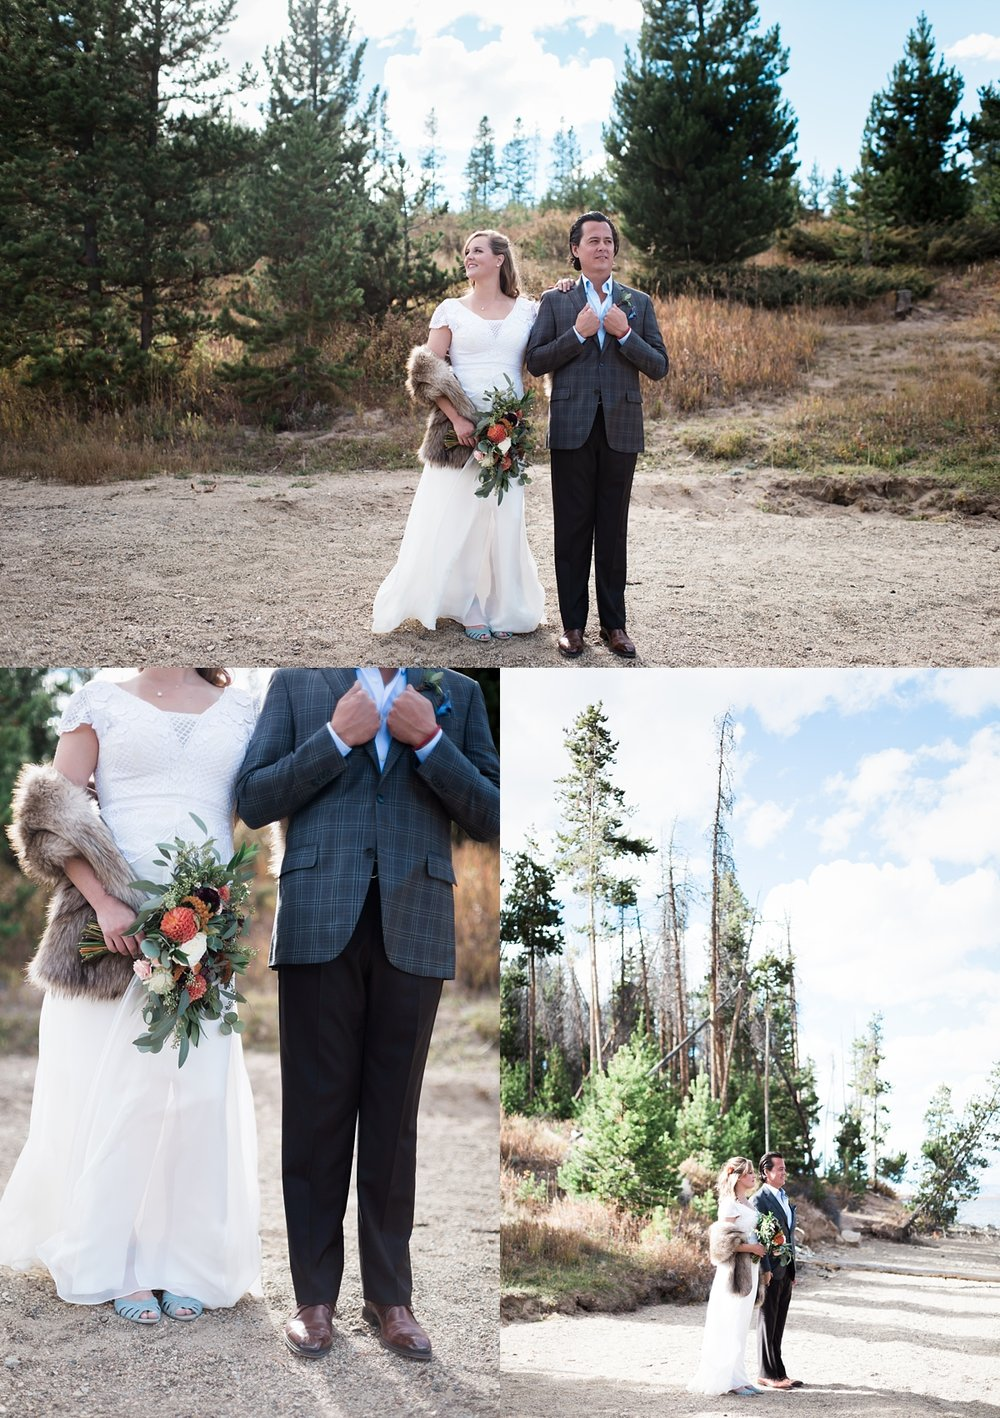 I just love how Ashley and Jeremy's wedding day style came together without being too matchy!